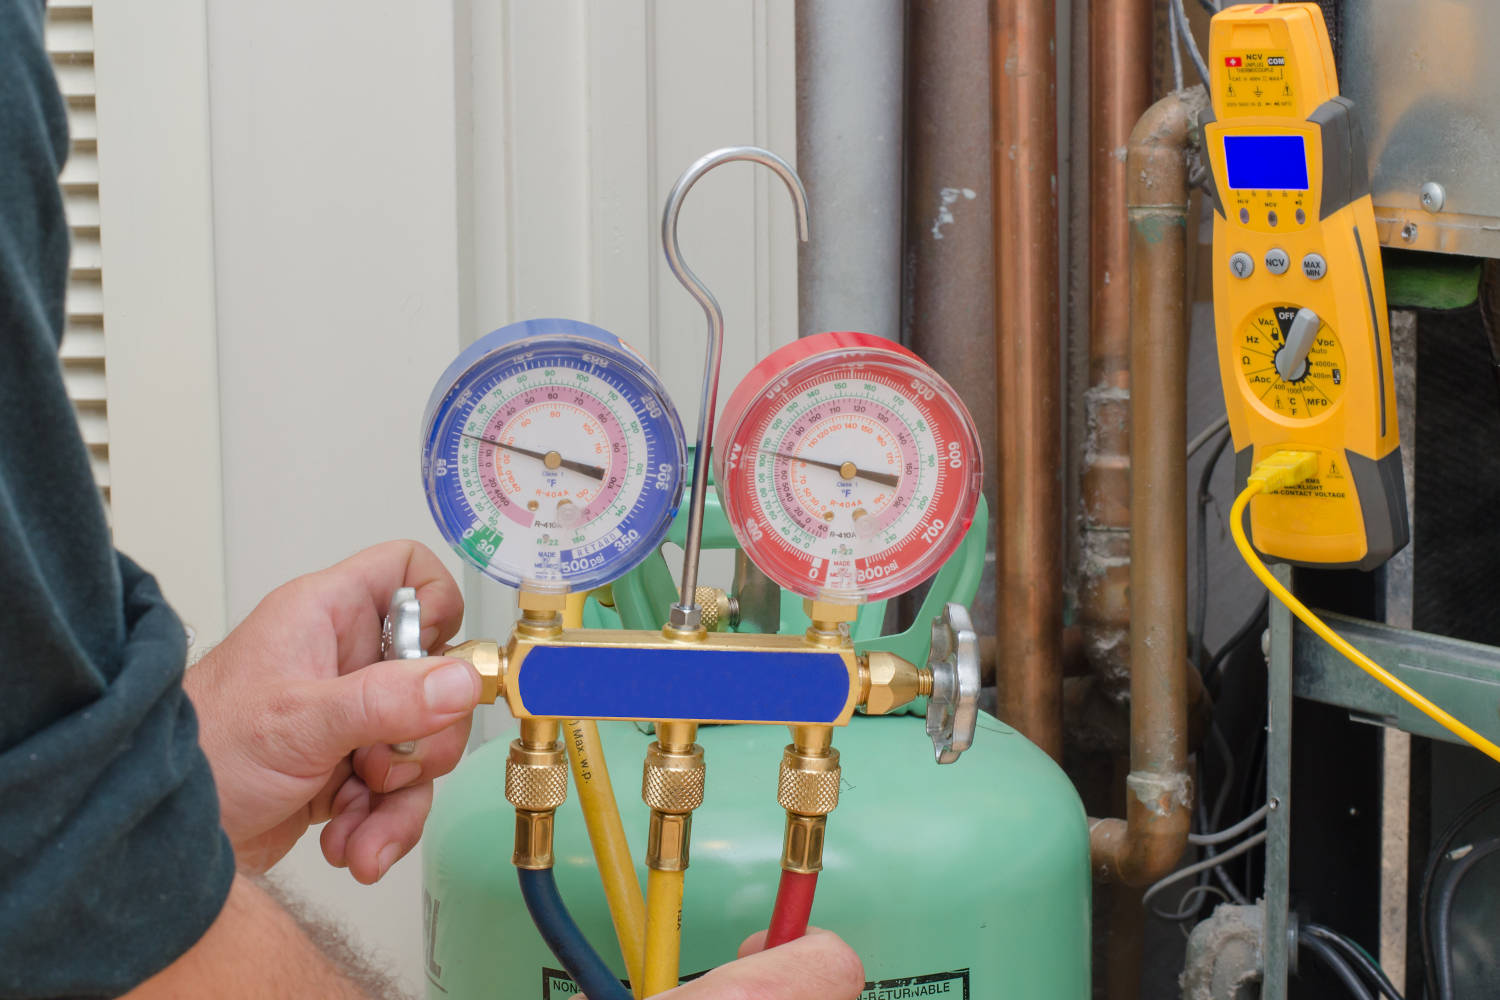 Refrigerant tank and gauges for charging a residential heat pump